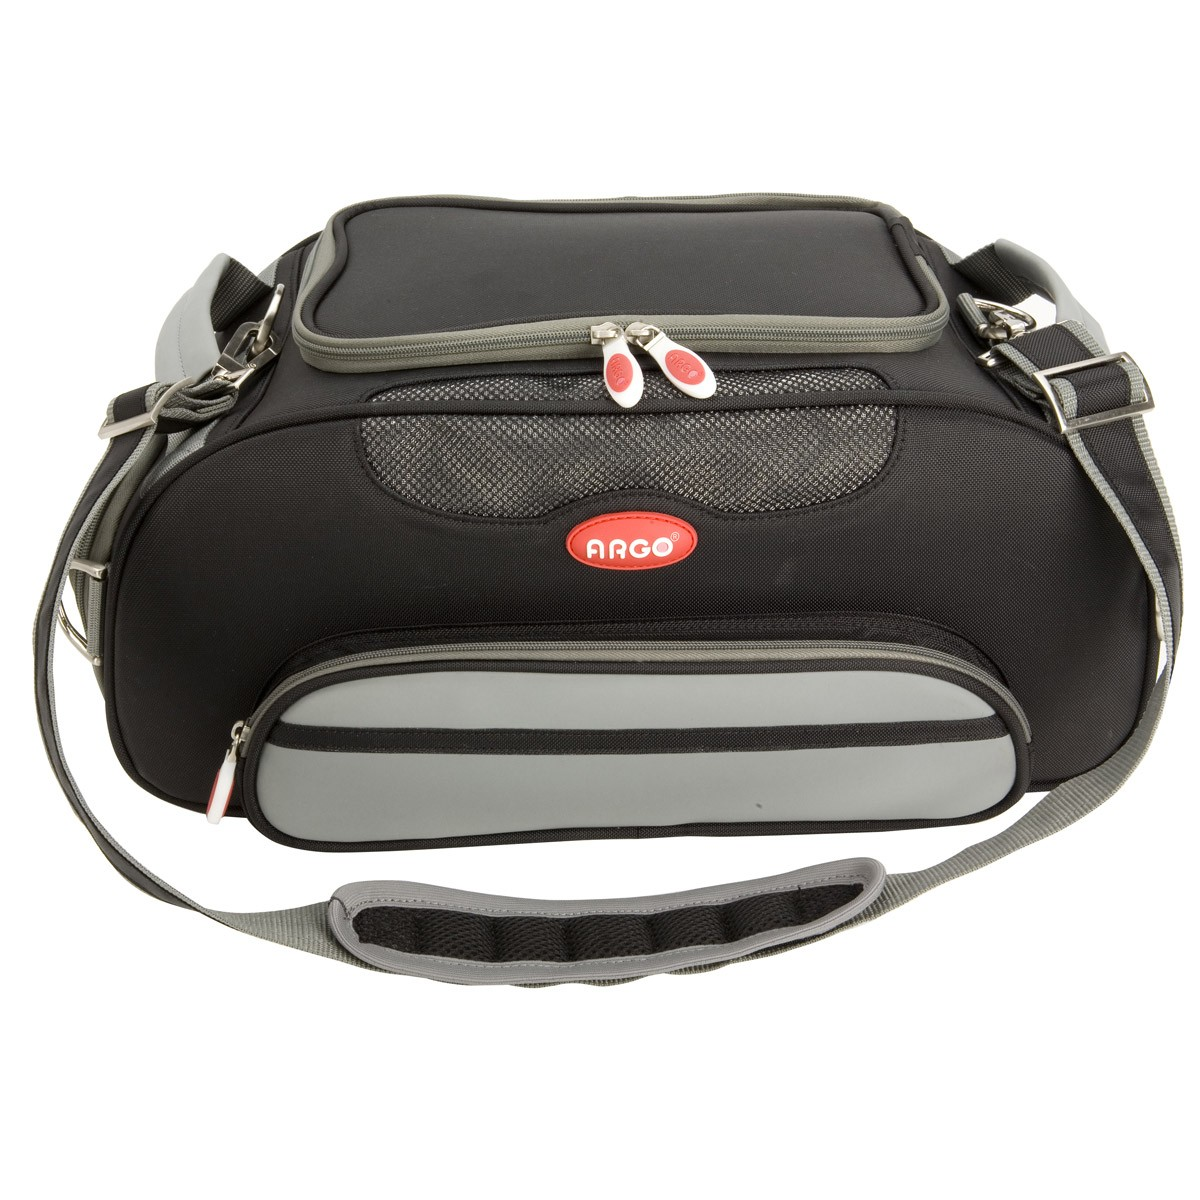 03d2aaf8bb ARGO Aero-Pet Airline Approved Carrier Black Small - 18.5 in